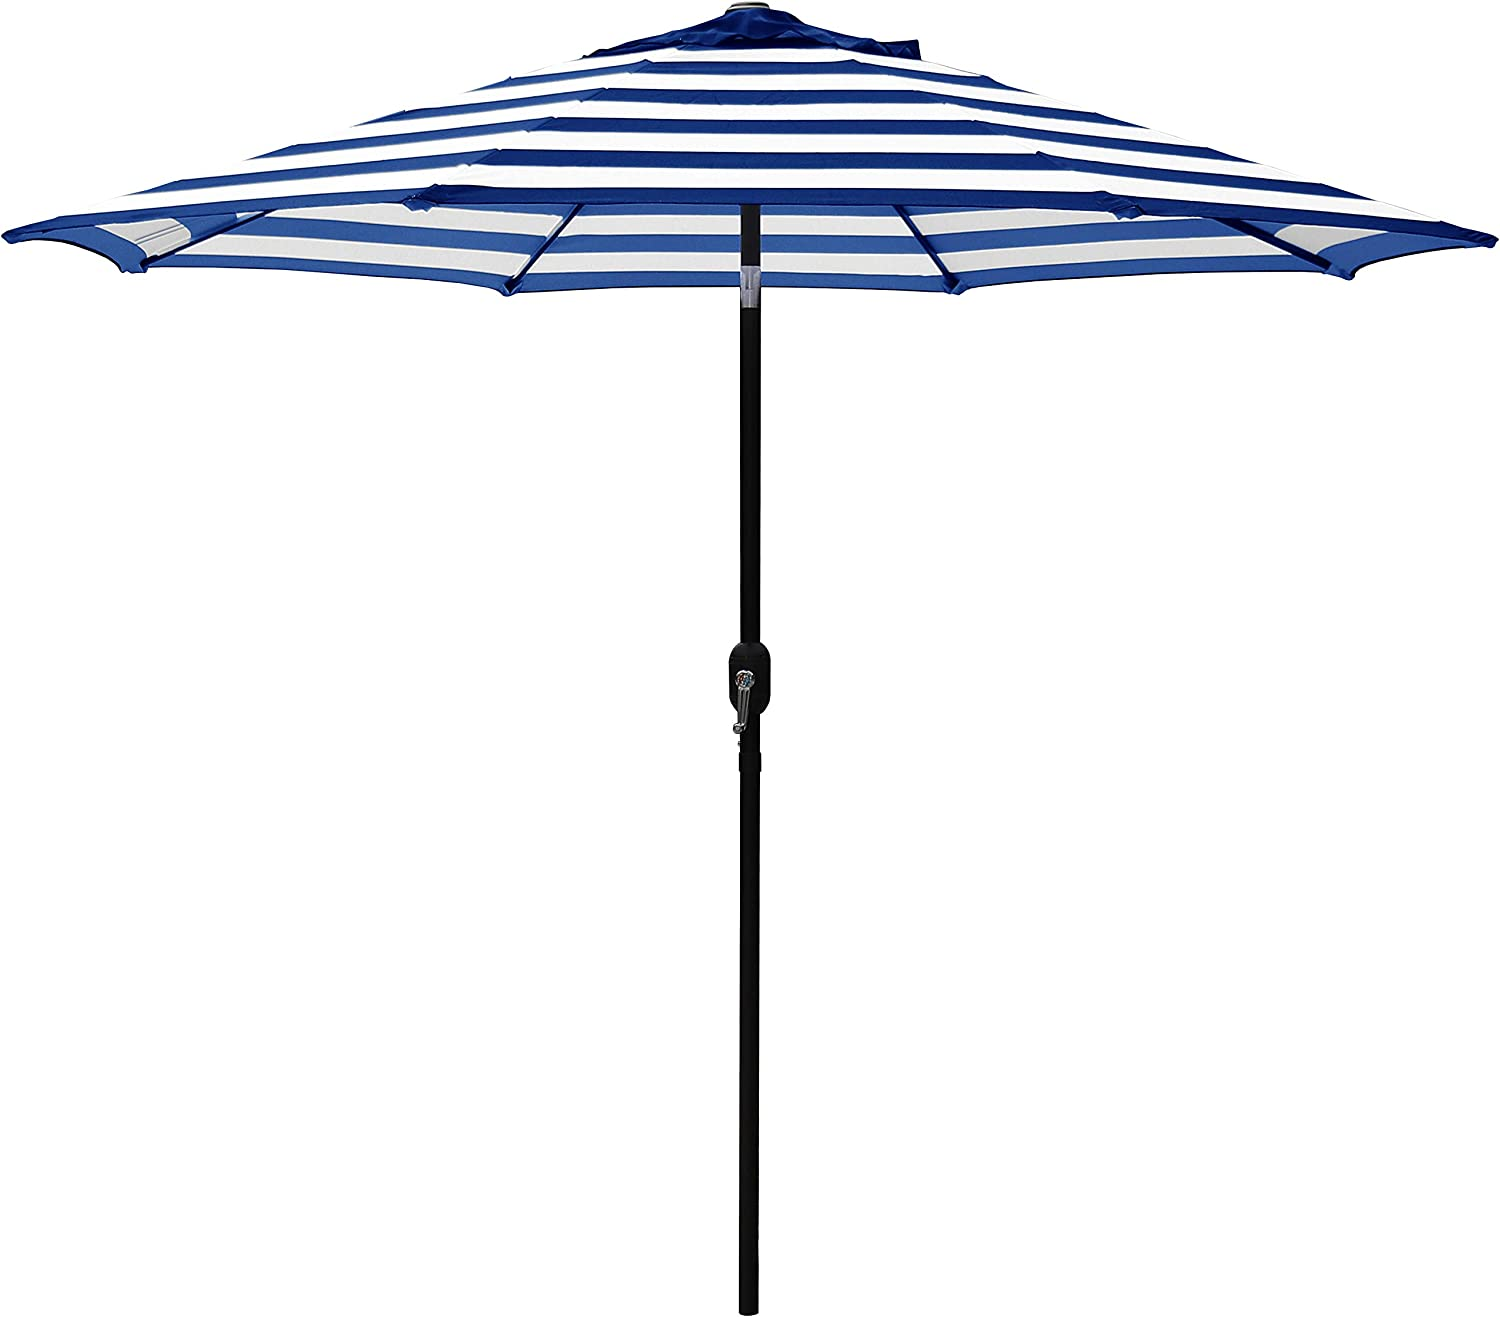 ABBLE Outdoor Patio Umbrella 9 Ft Stripe with Crank and Tilt, Weather Resistant, UV Protective Umbrella, Durable, 8 Sturdy Steel Ribs, Market Outdoor Table Umbrella – Blue and White